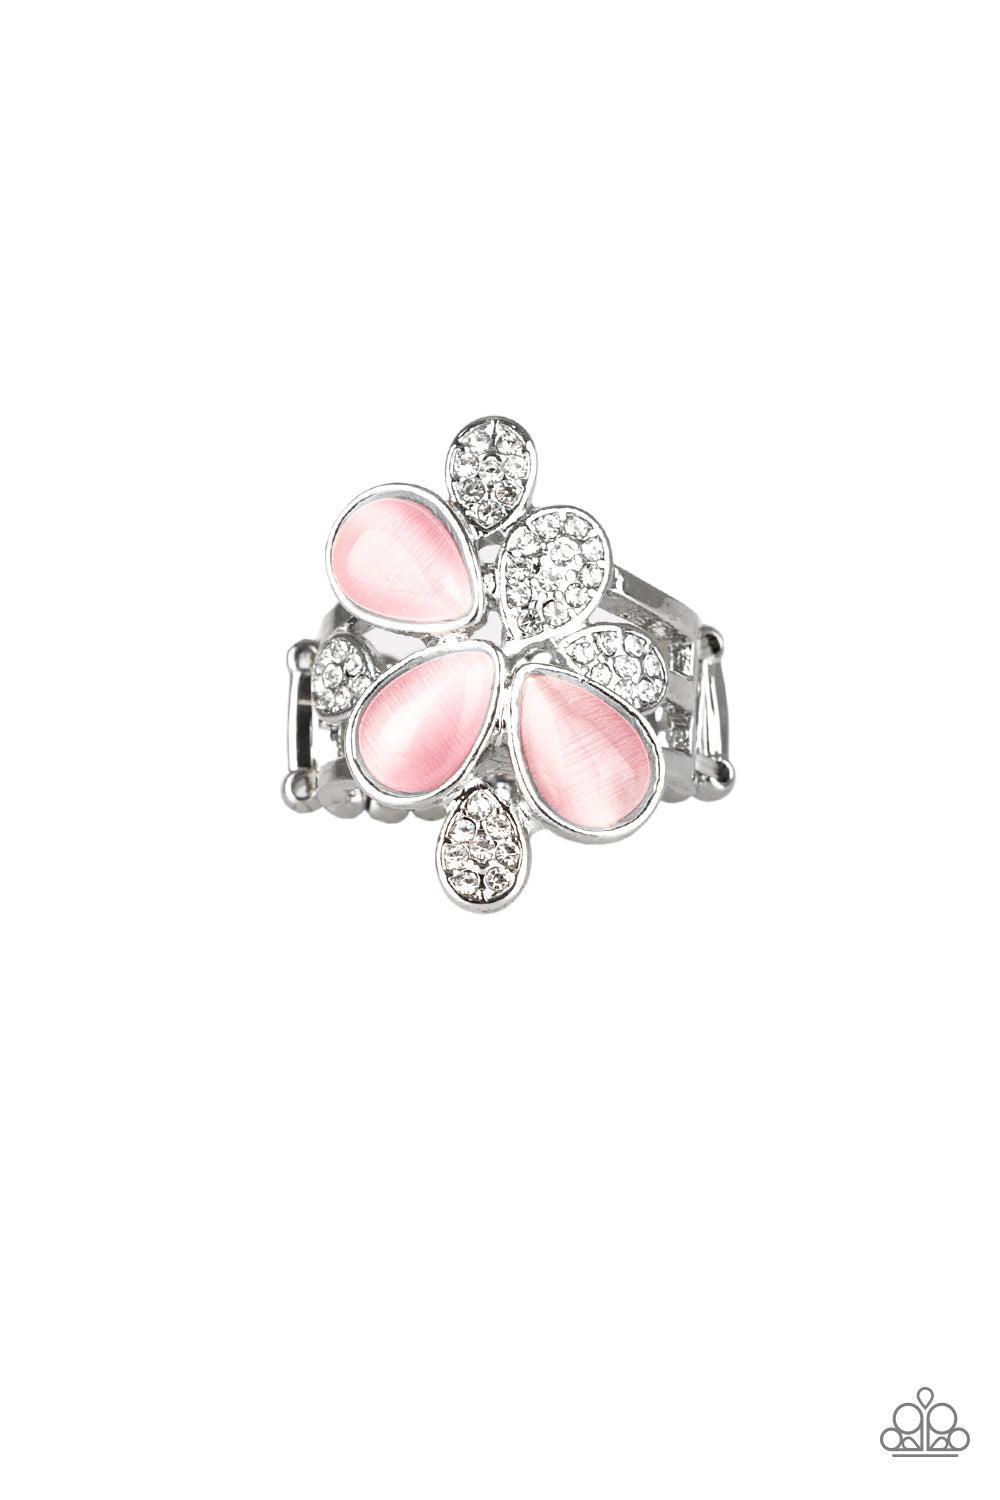 Paparazzi Accessories - Diamond Daises - Pink Ring - JMJ Jewelry Collection